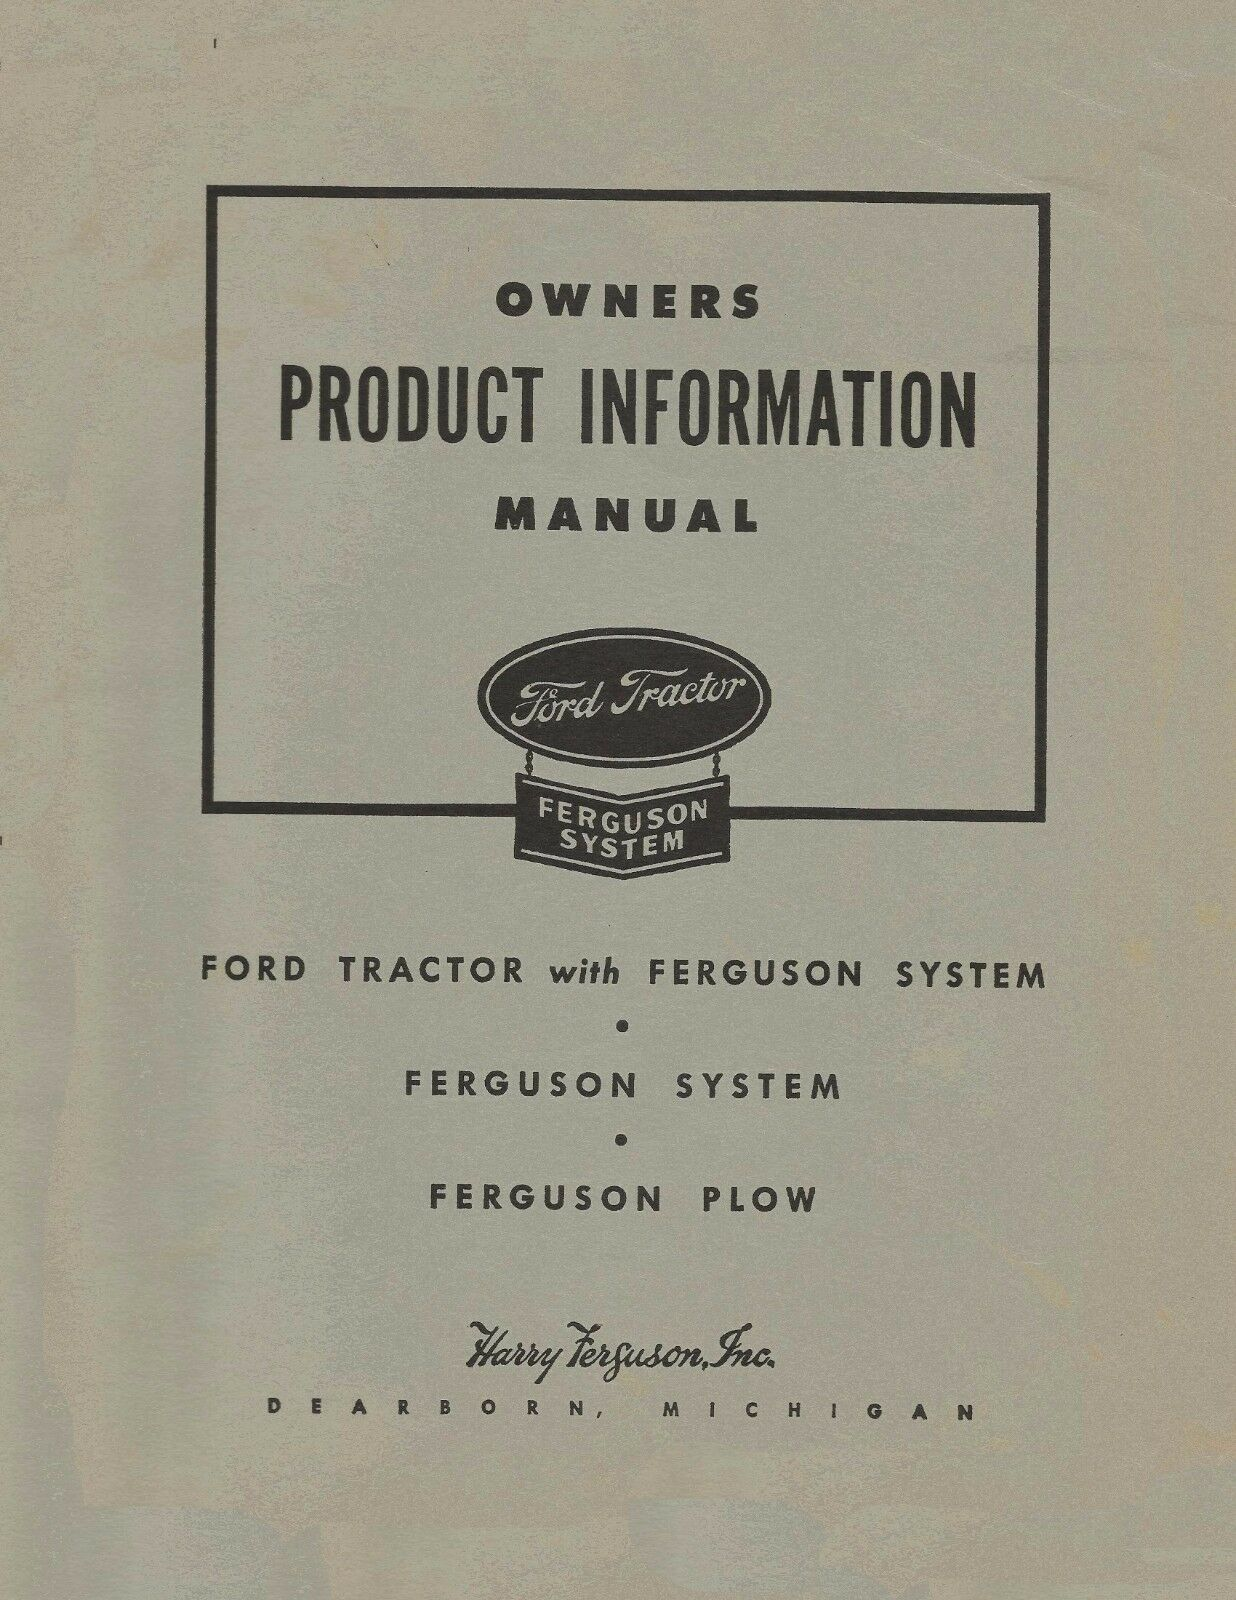 1939 47 ford 9n 2n product information manual operators ferguson rh picclick com ford 9n service manual pdf ford 8n operators manual